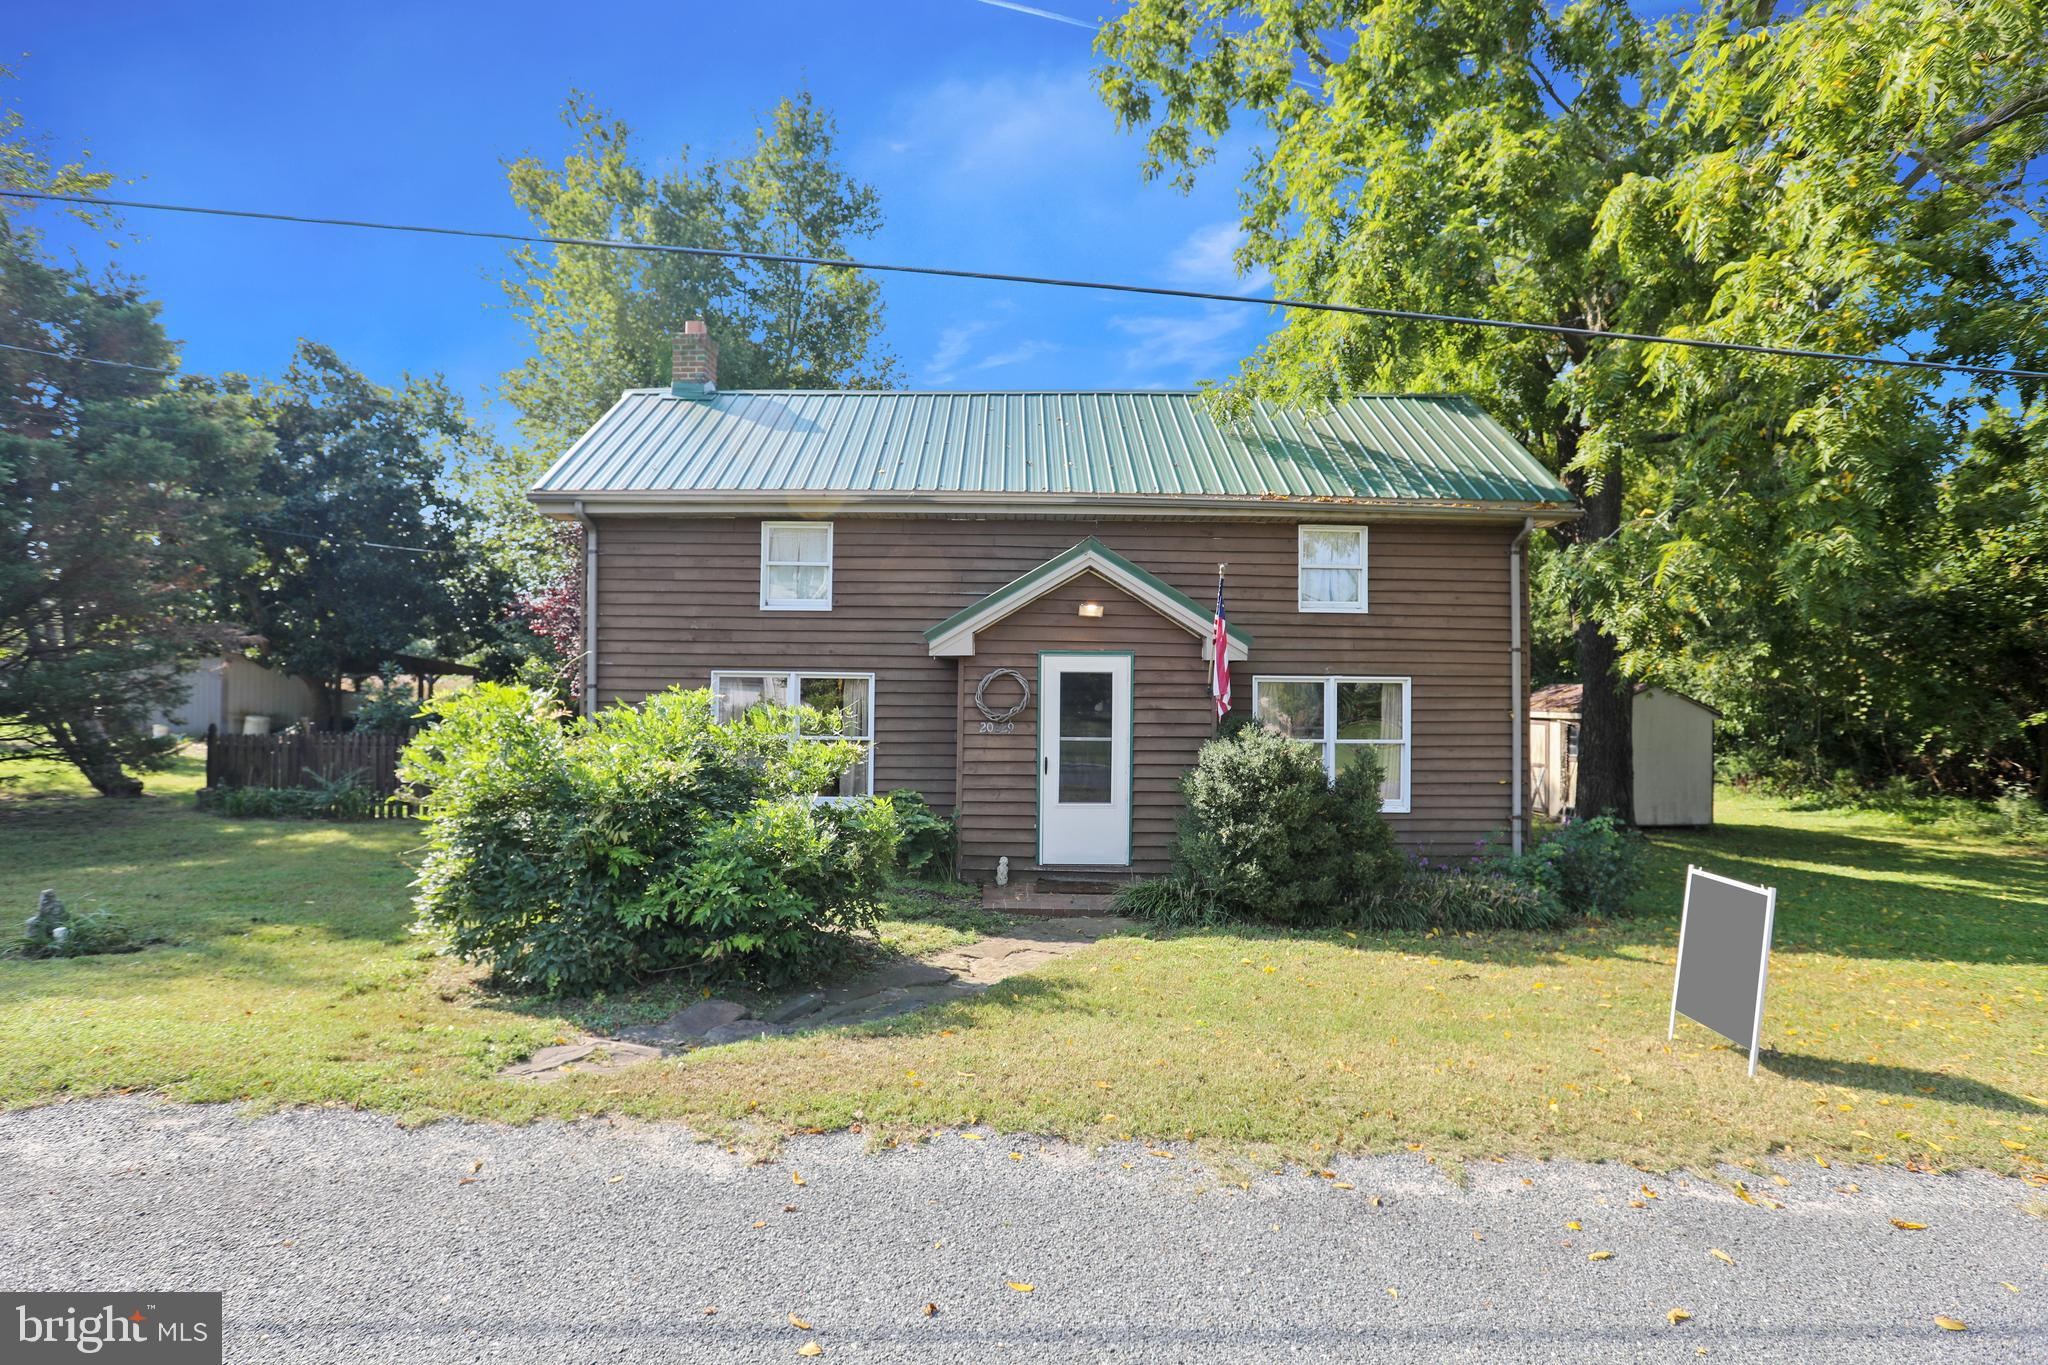 Lovingly cared for 1900 waterman's house only 100 yards from the Nanticoke River in the quaint and q